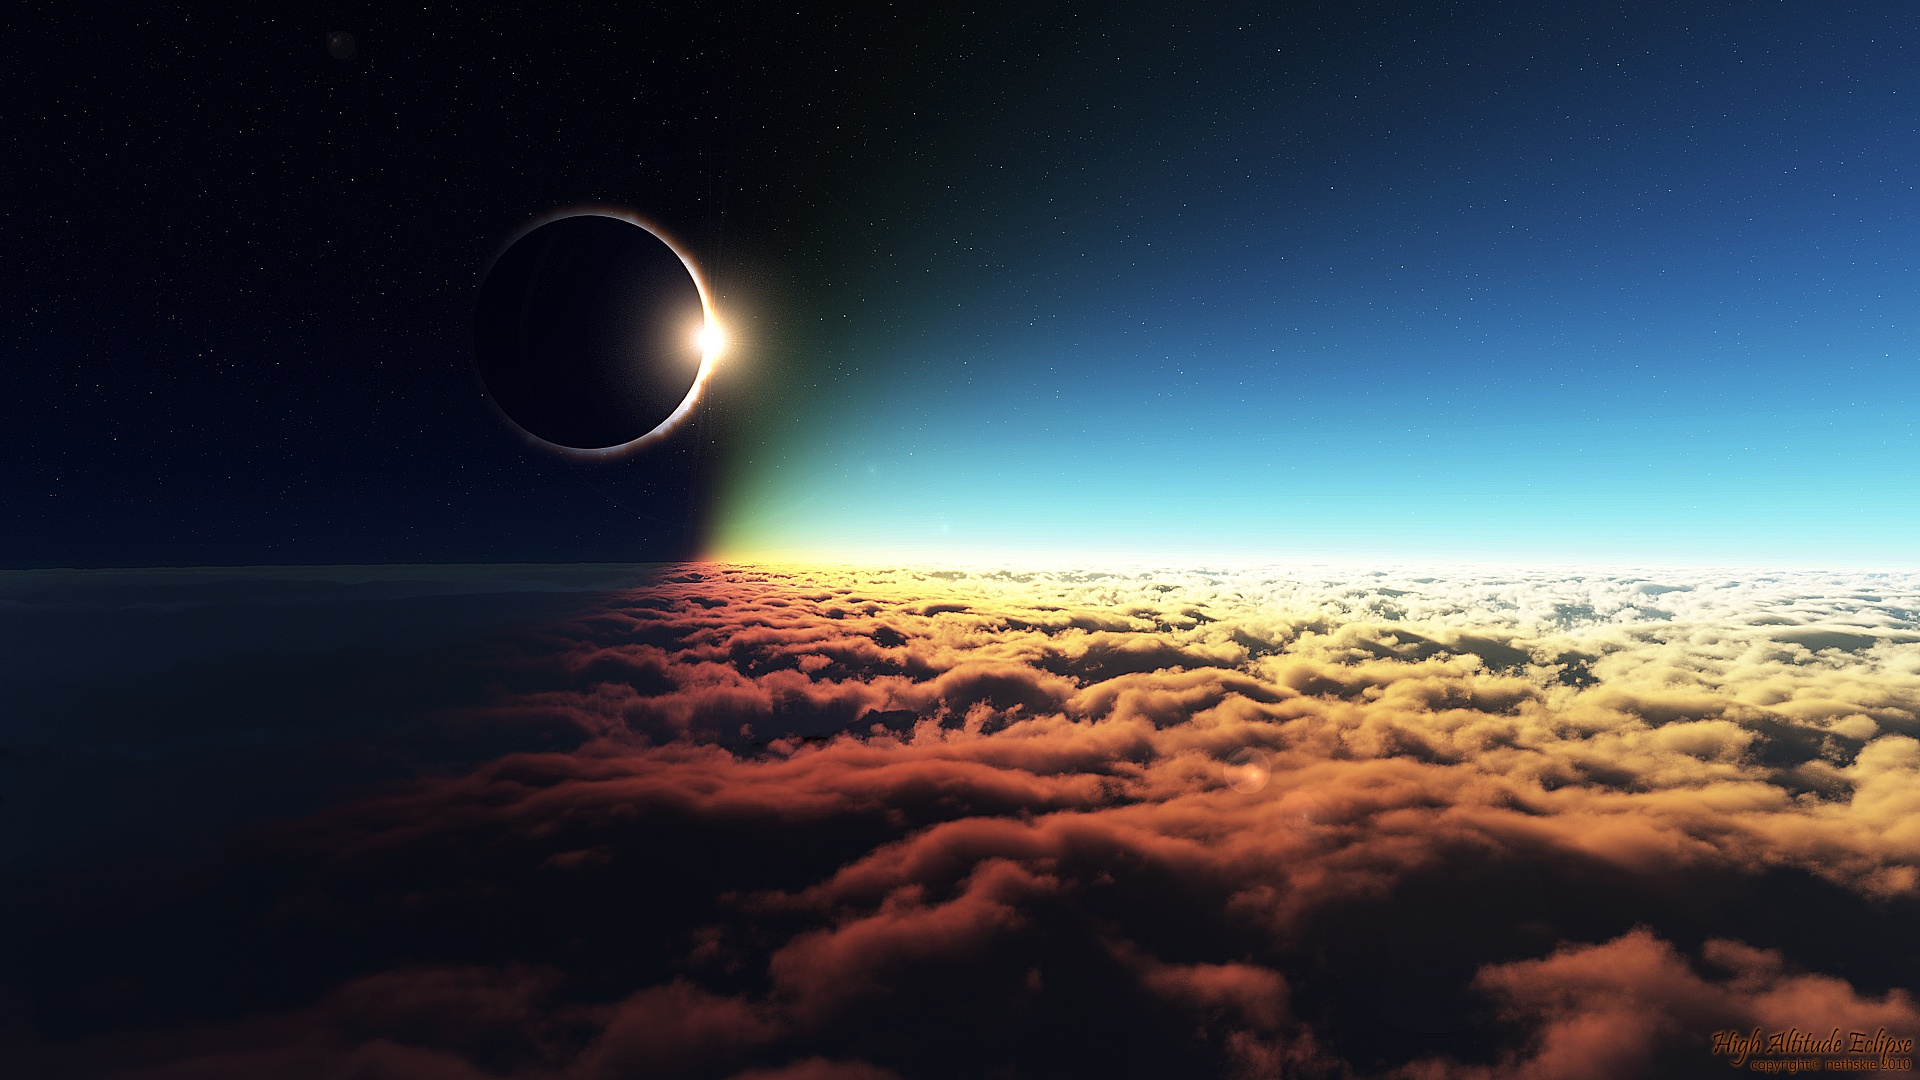 Eclipse in the Sky Wallpaper Full HD